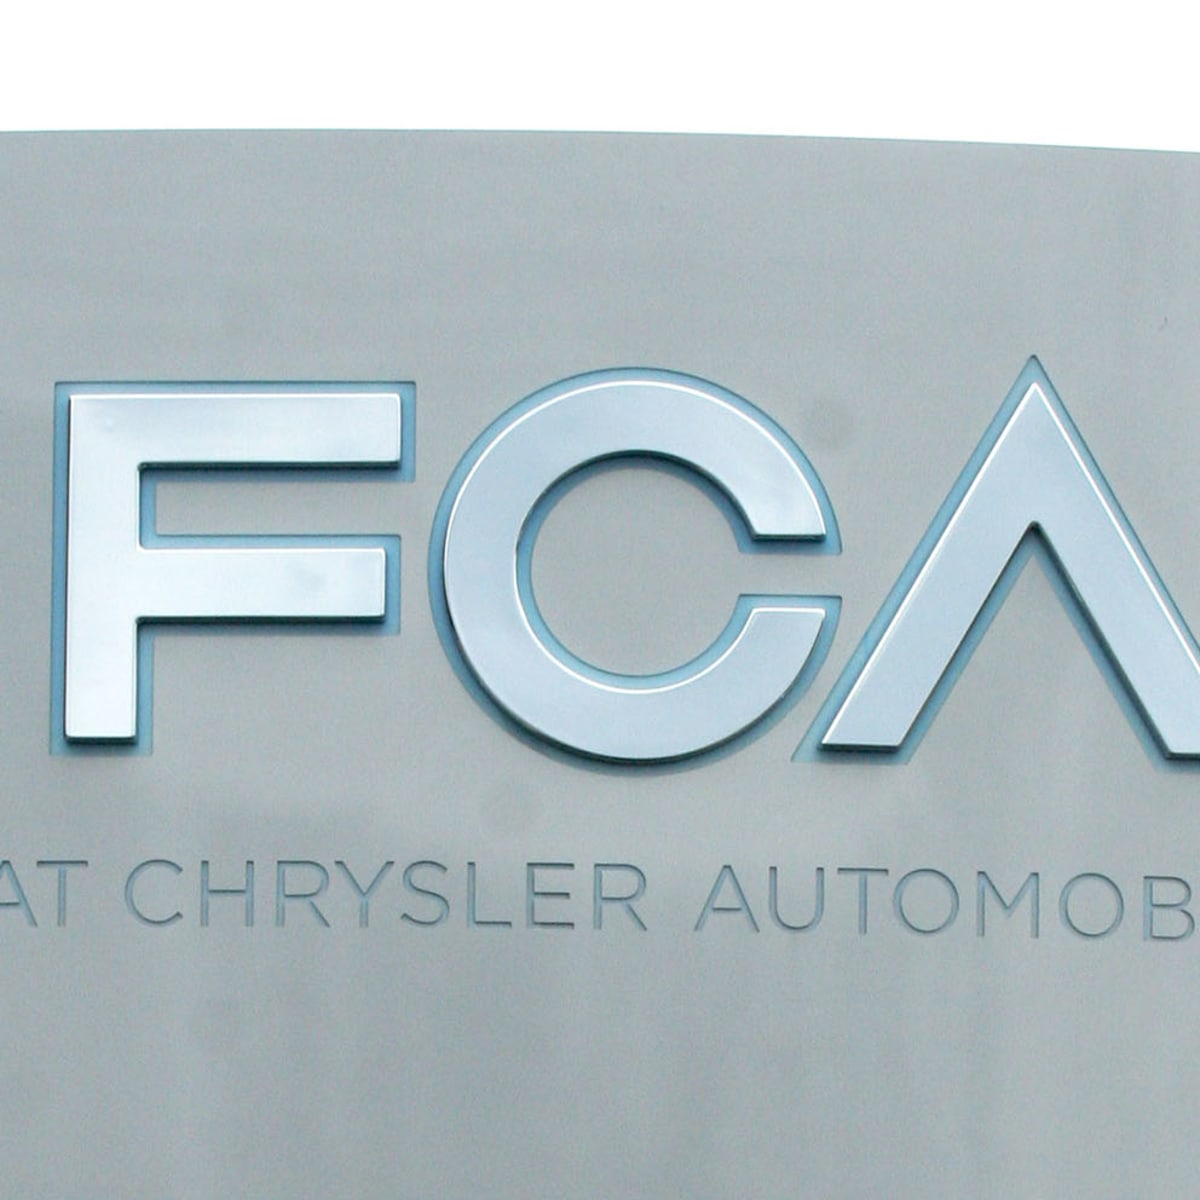 Fiat Chrysler sued over diesel emissions cheating, Mercedes